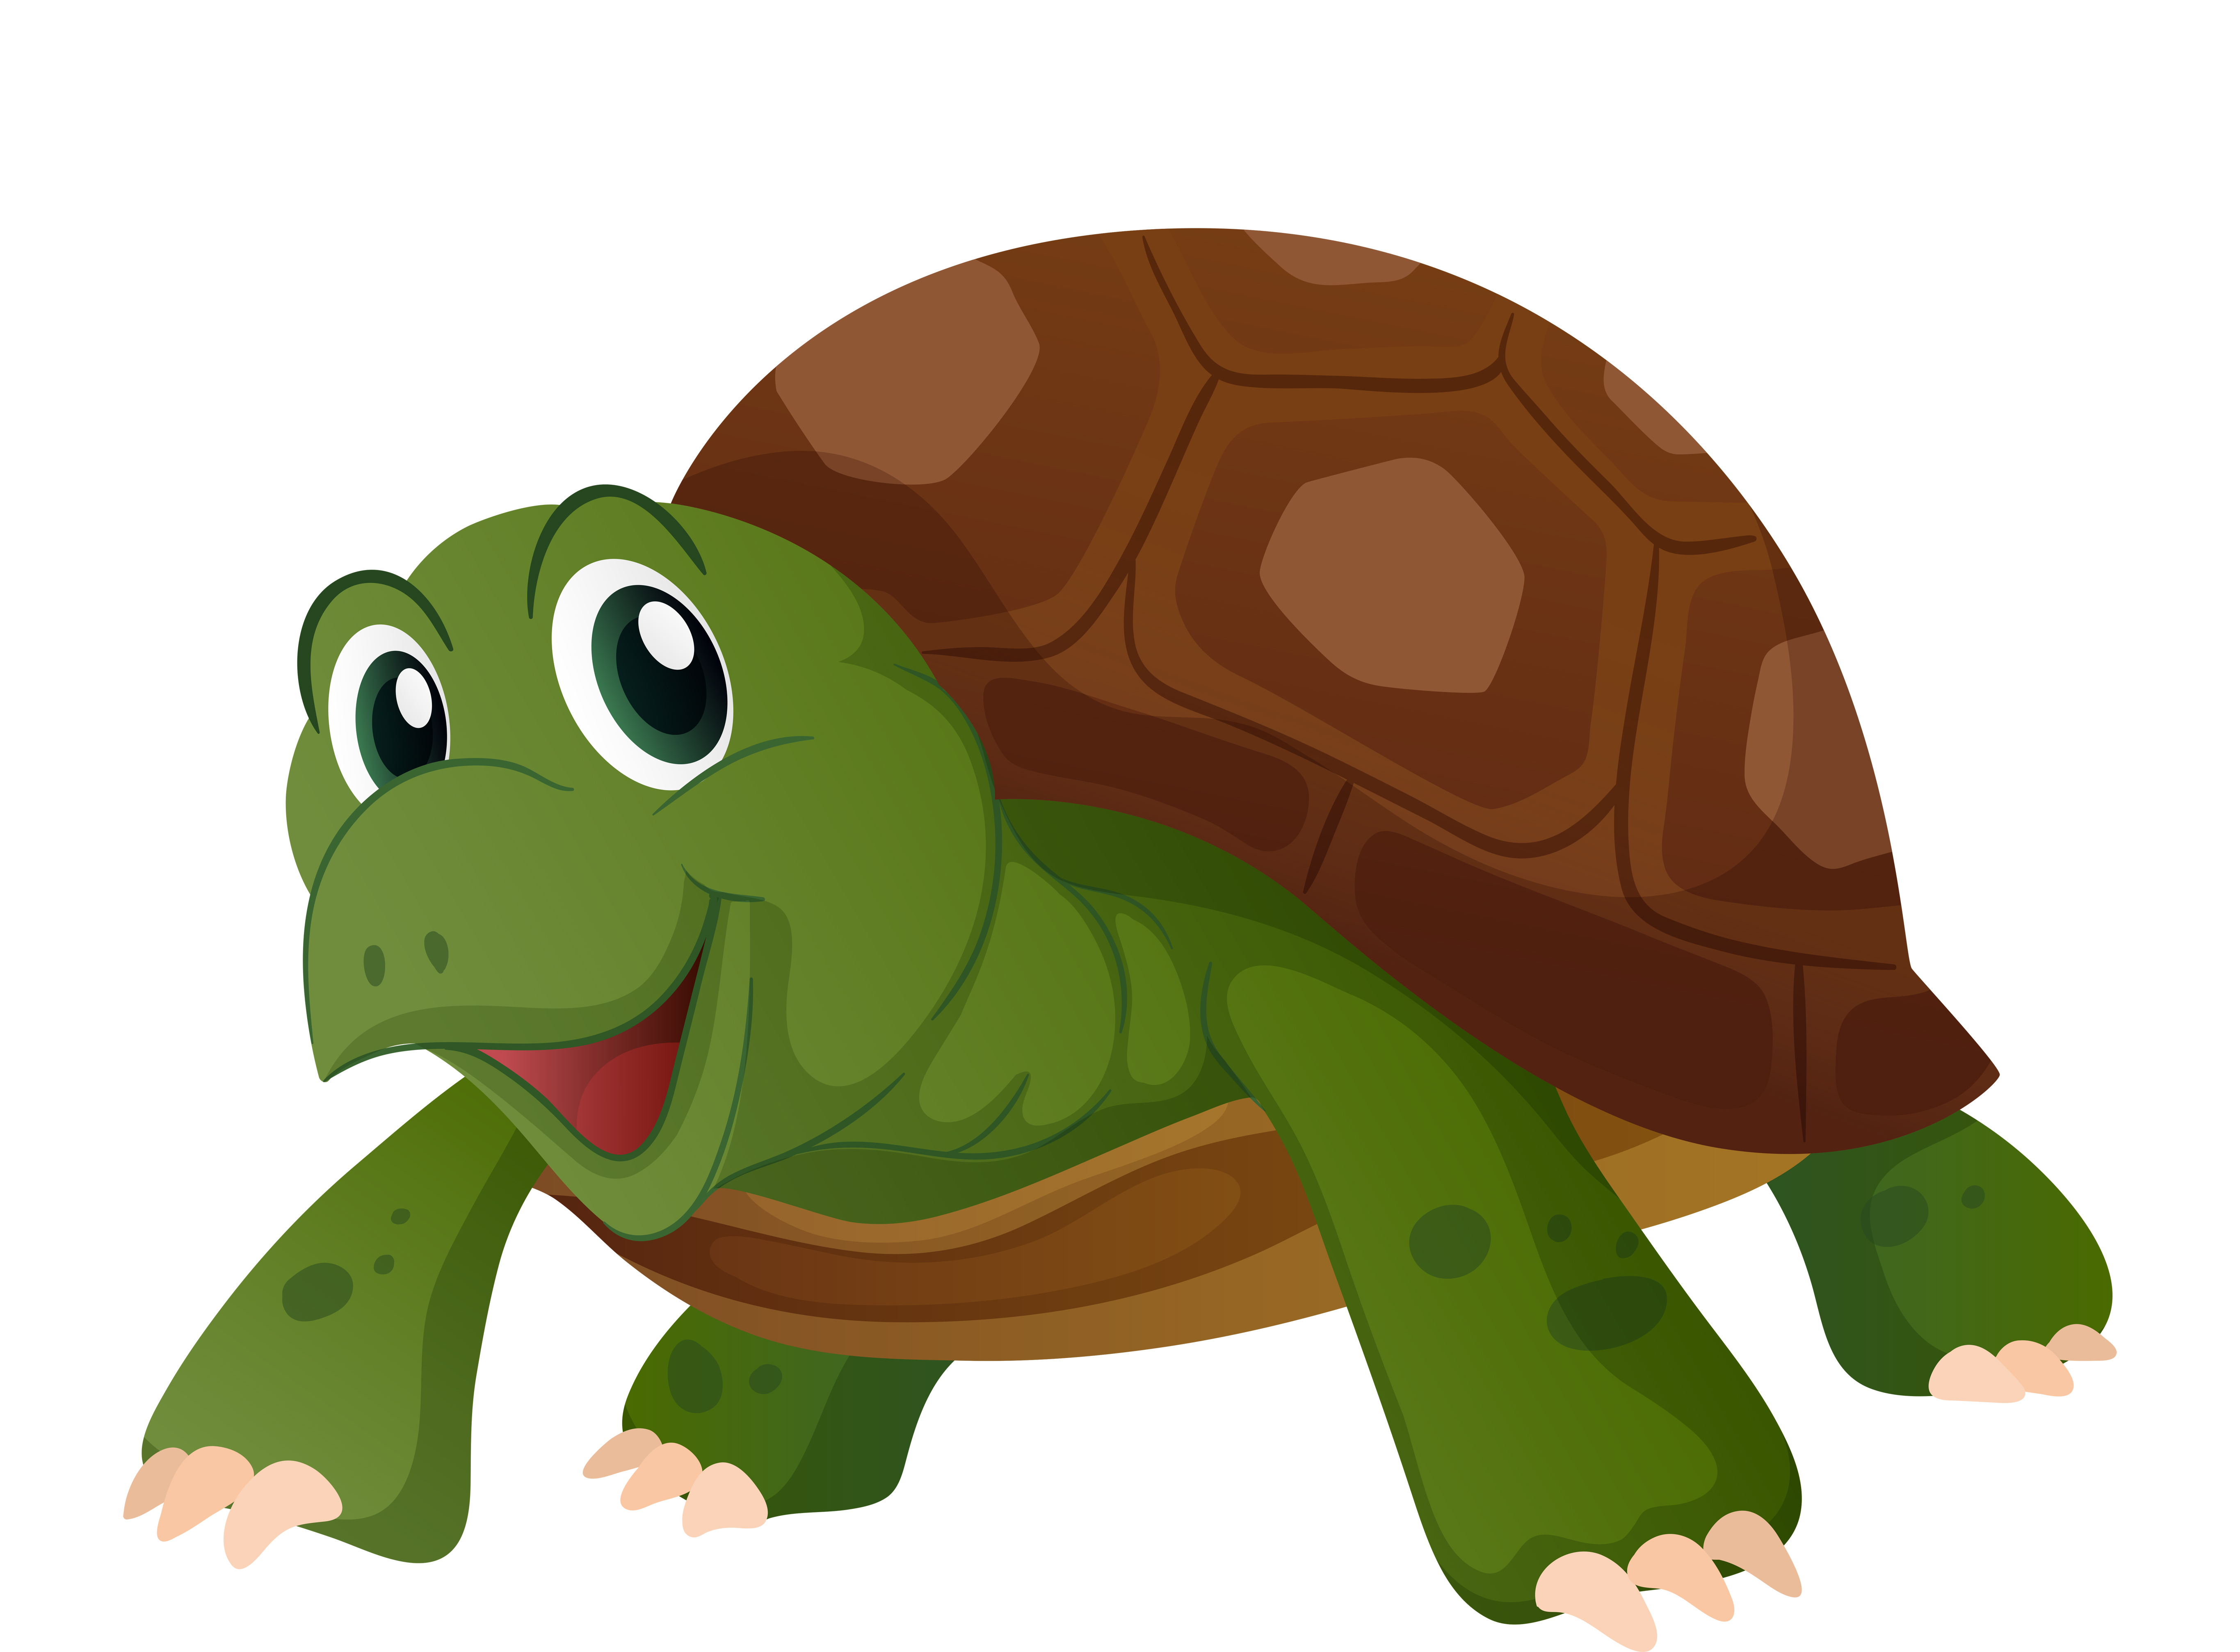 Cute Turtle With Happy Face Download Free Vectors Clipart